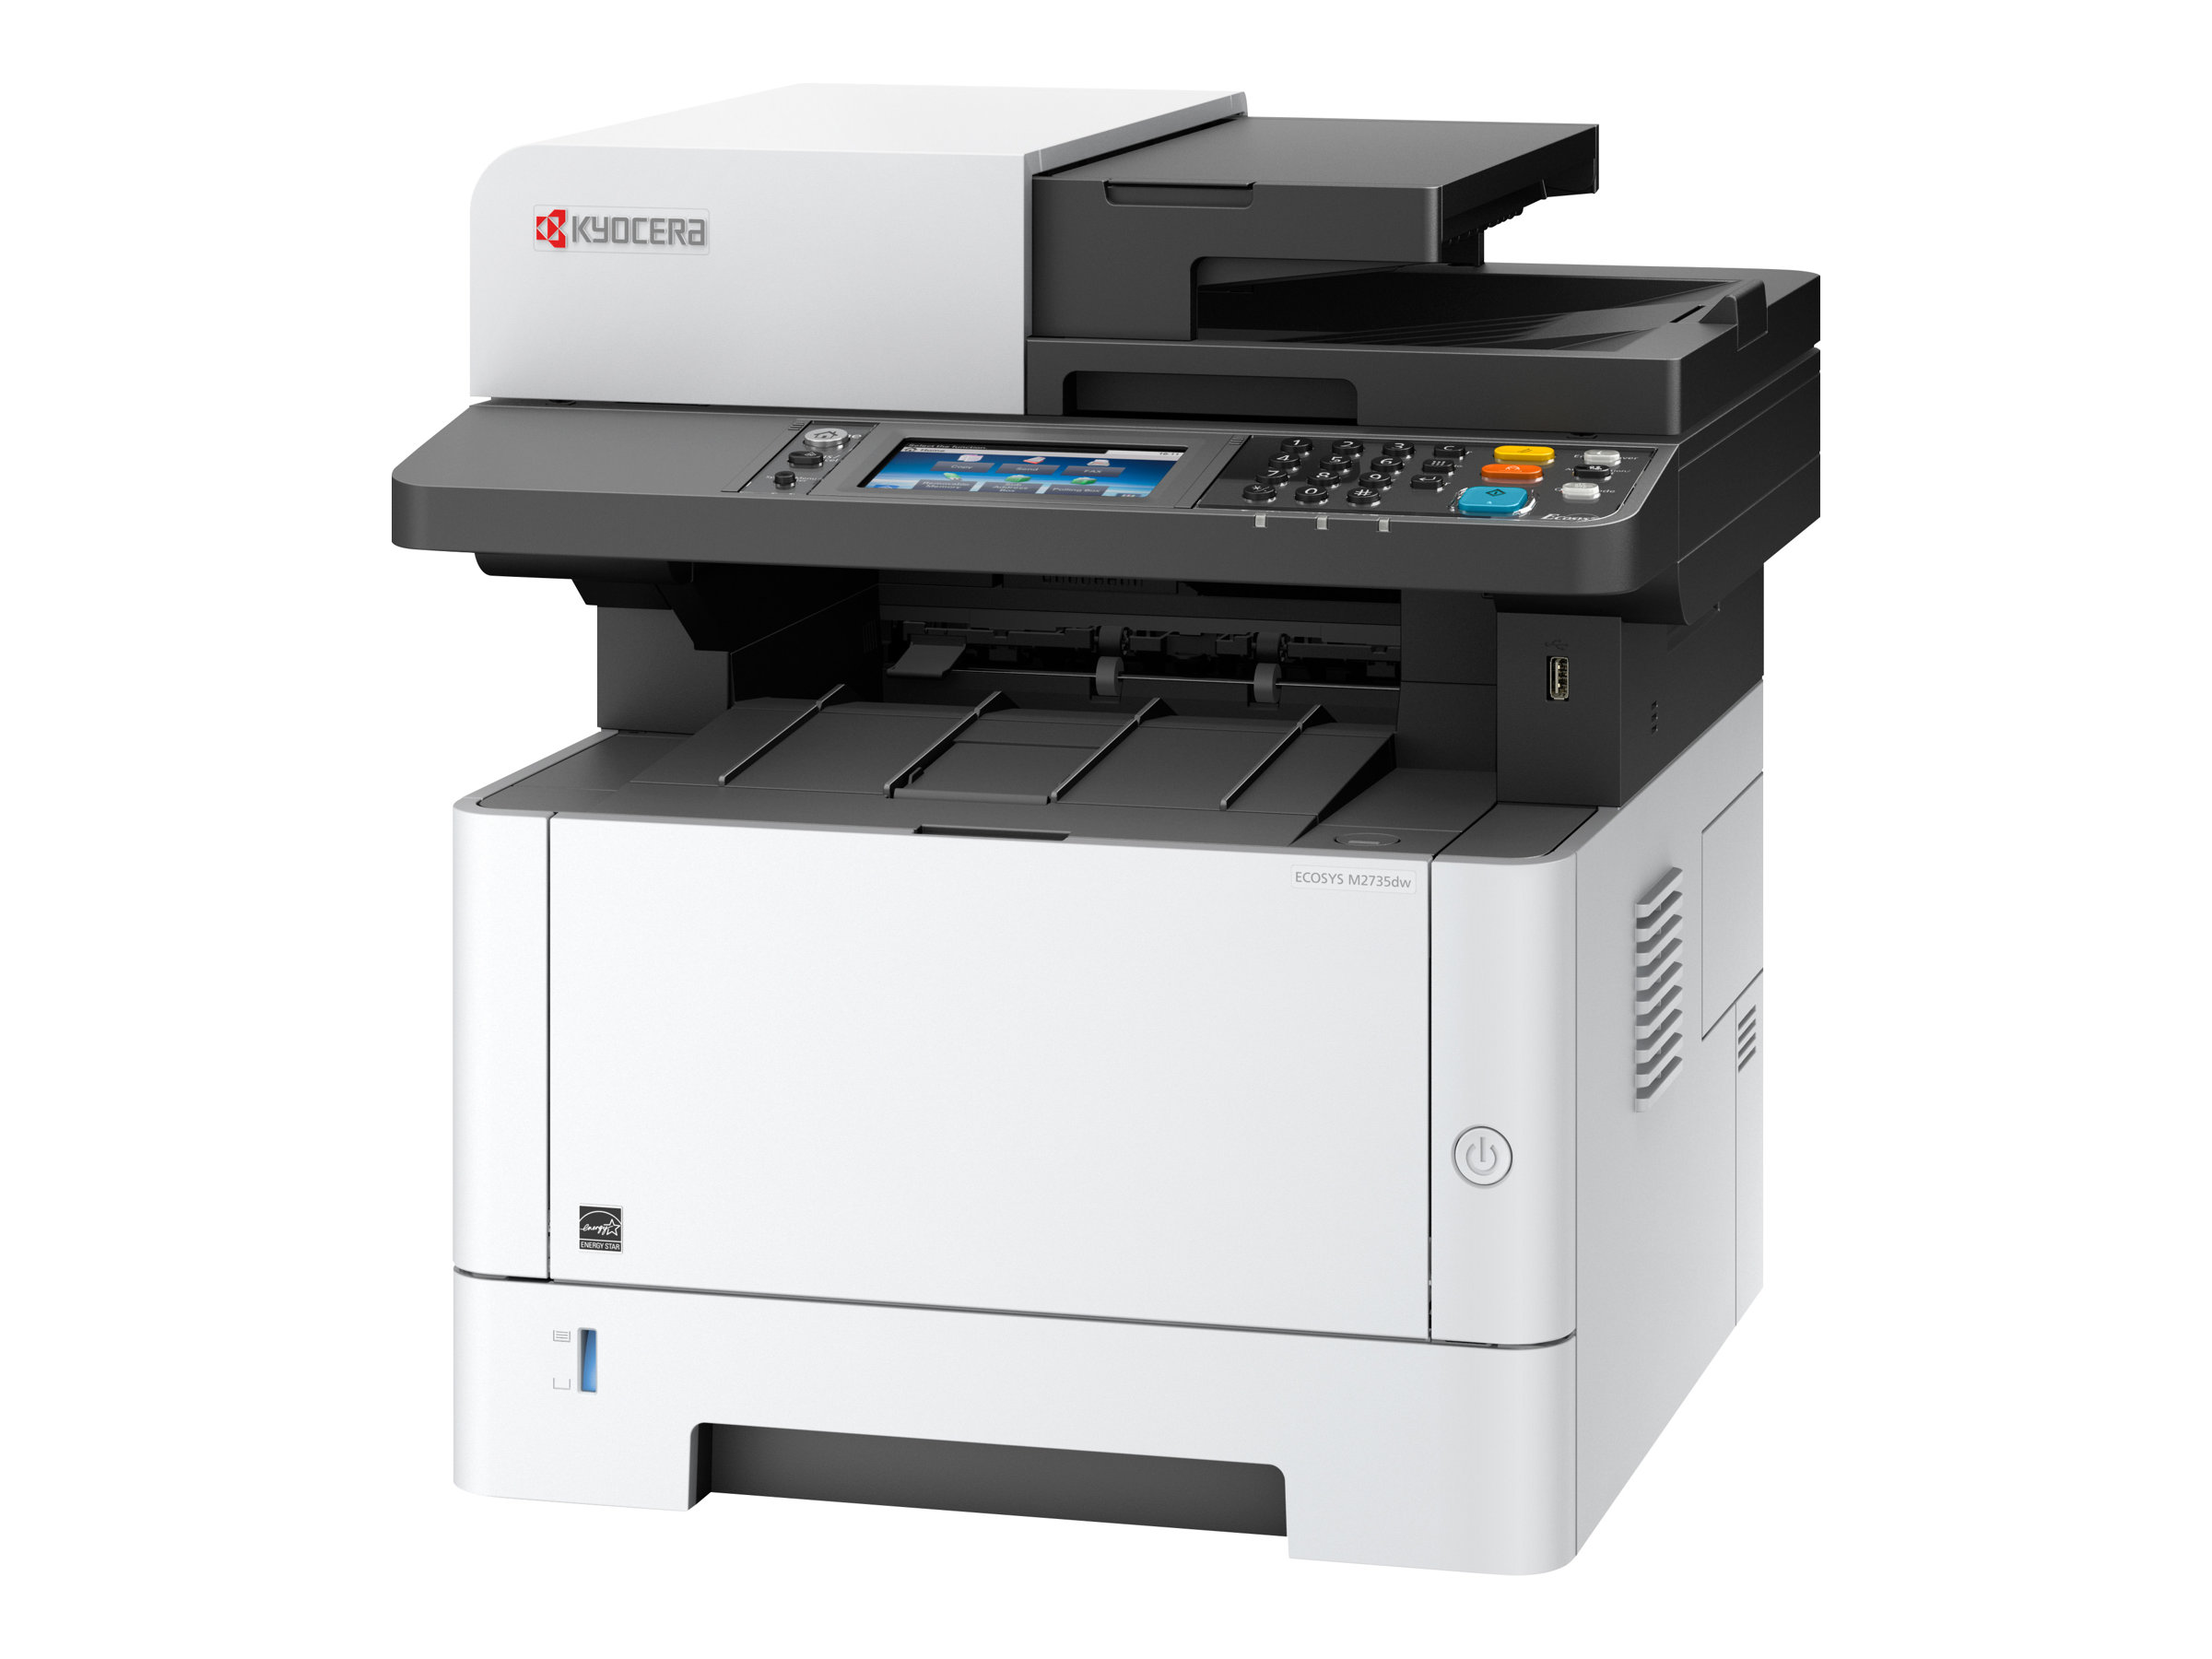 Kyocera ECOSYS M2735dw - Multifunktionsdrucker - s/w - Laser - Legal (216 x 356 mm)